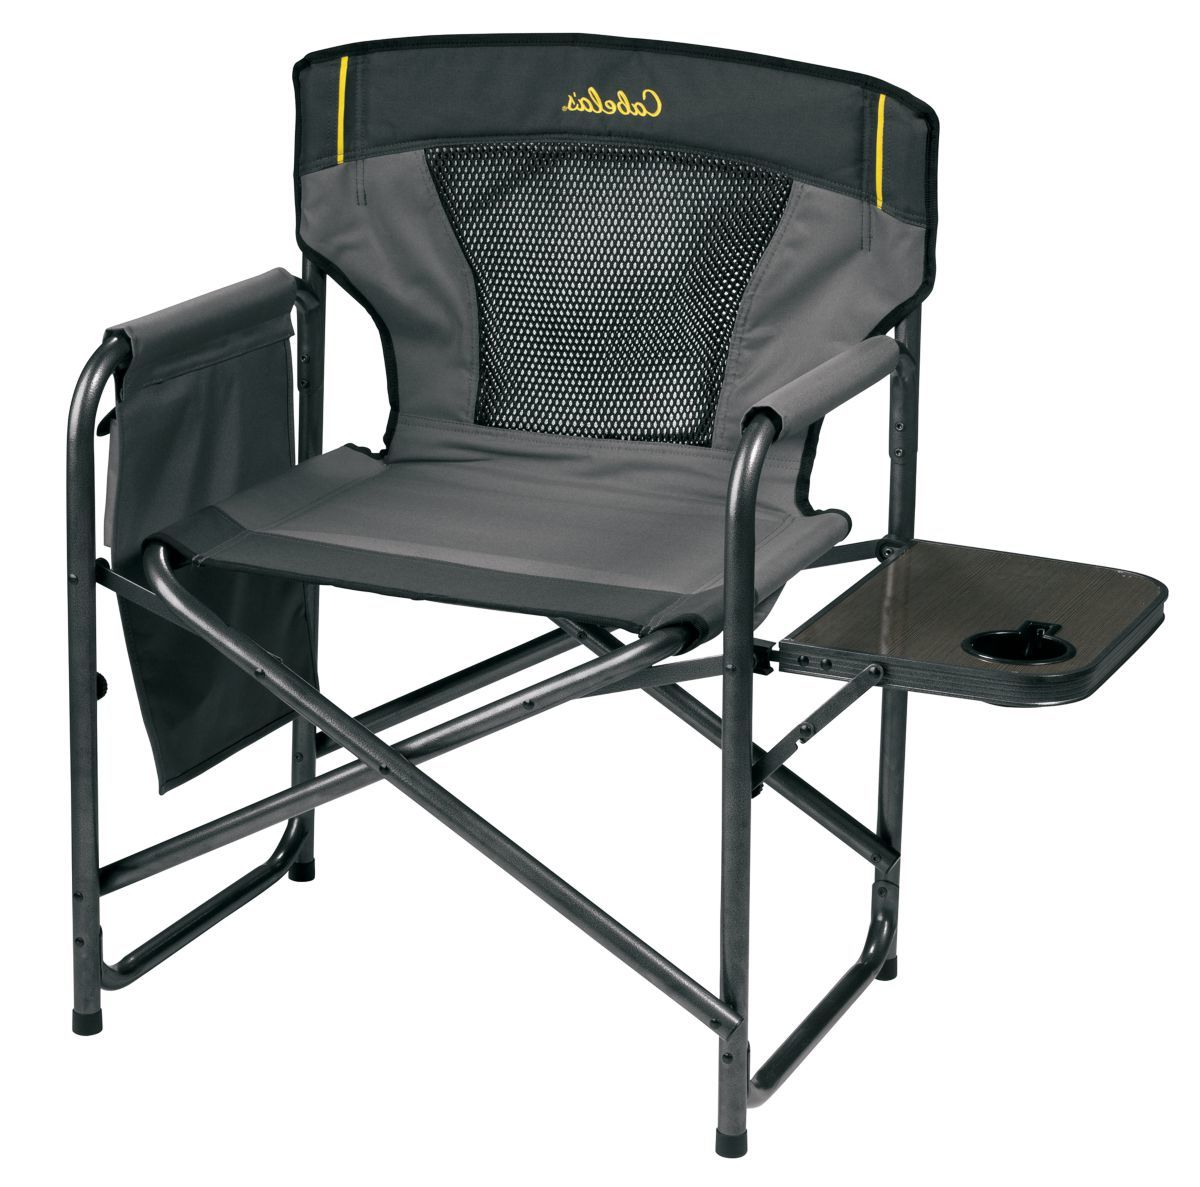 Cabela's Director's Chair